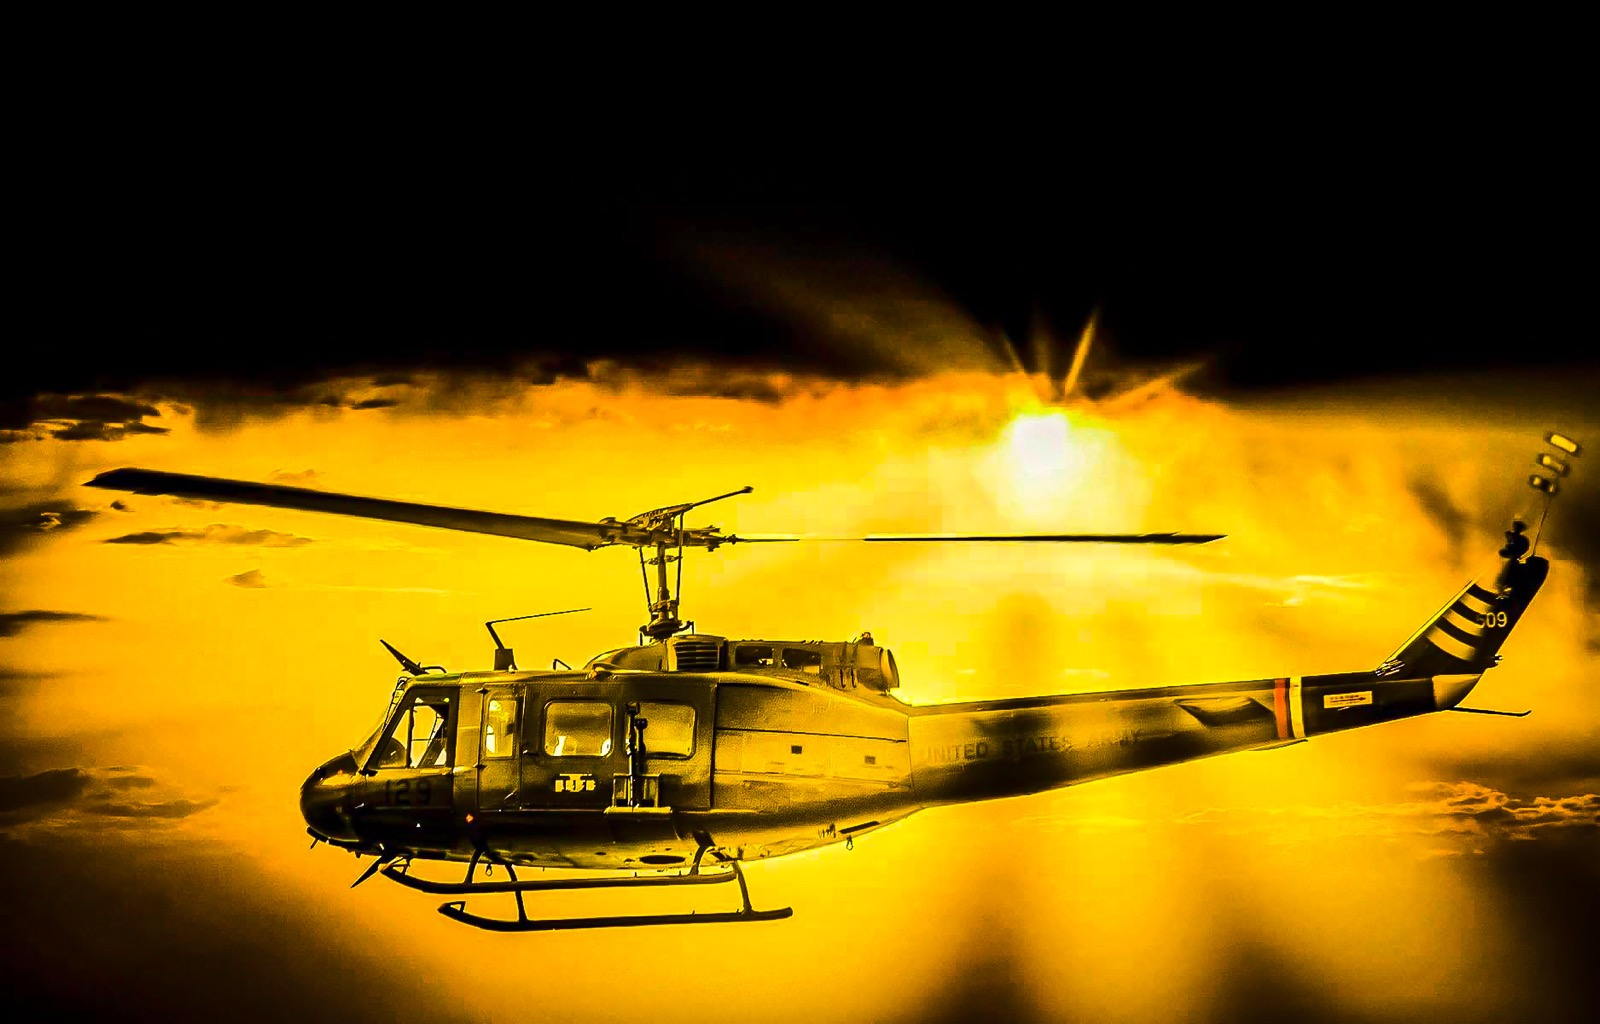 Evening golden hour Huey 509 against a sky full of drama